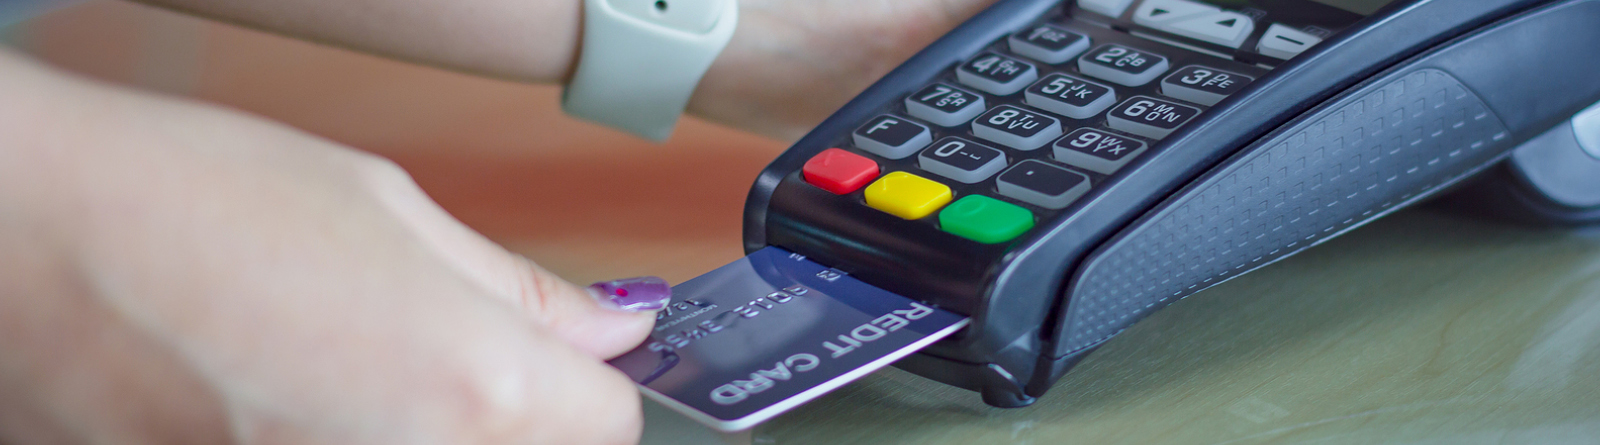 Person making a purchase with a debit card